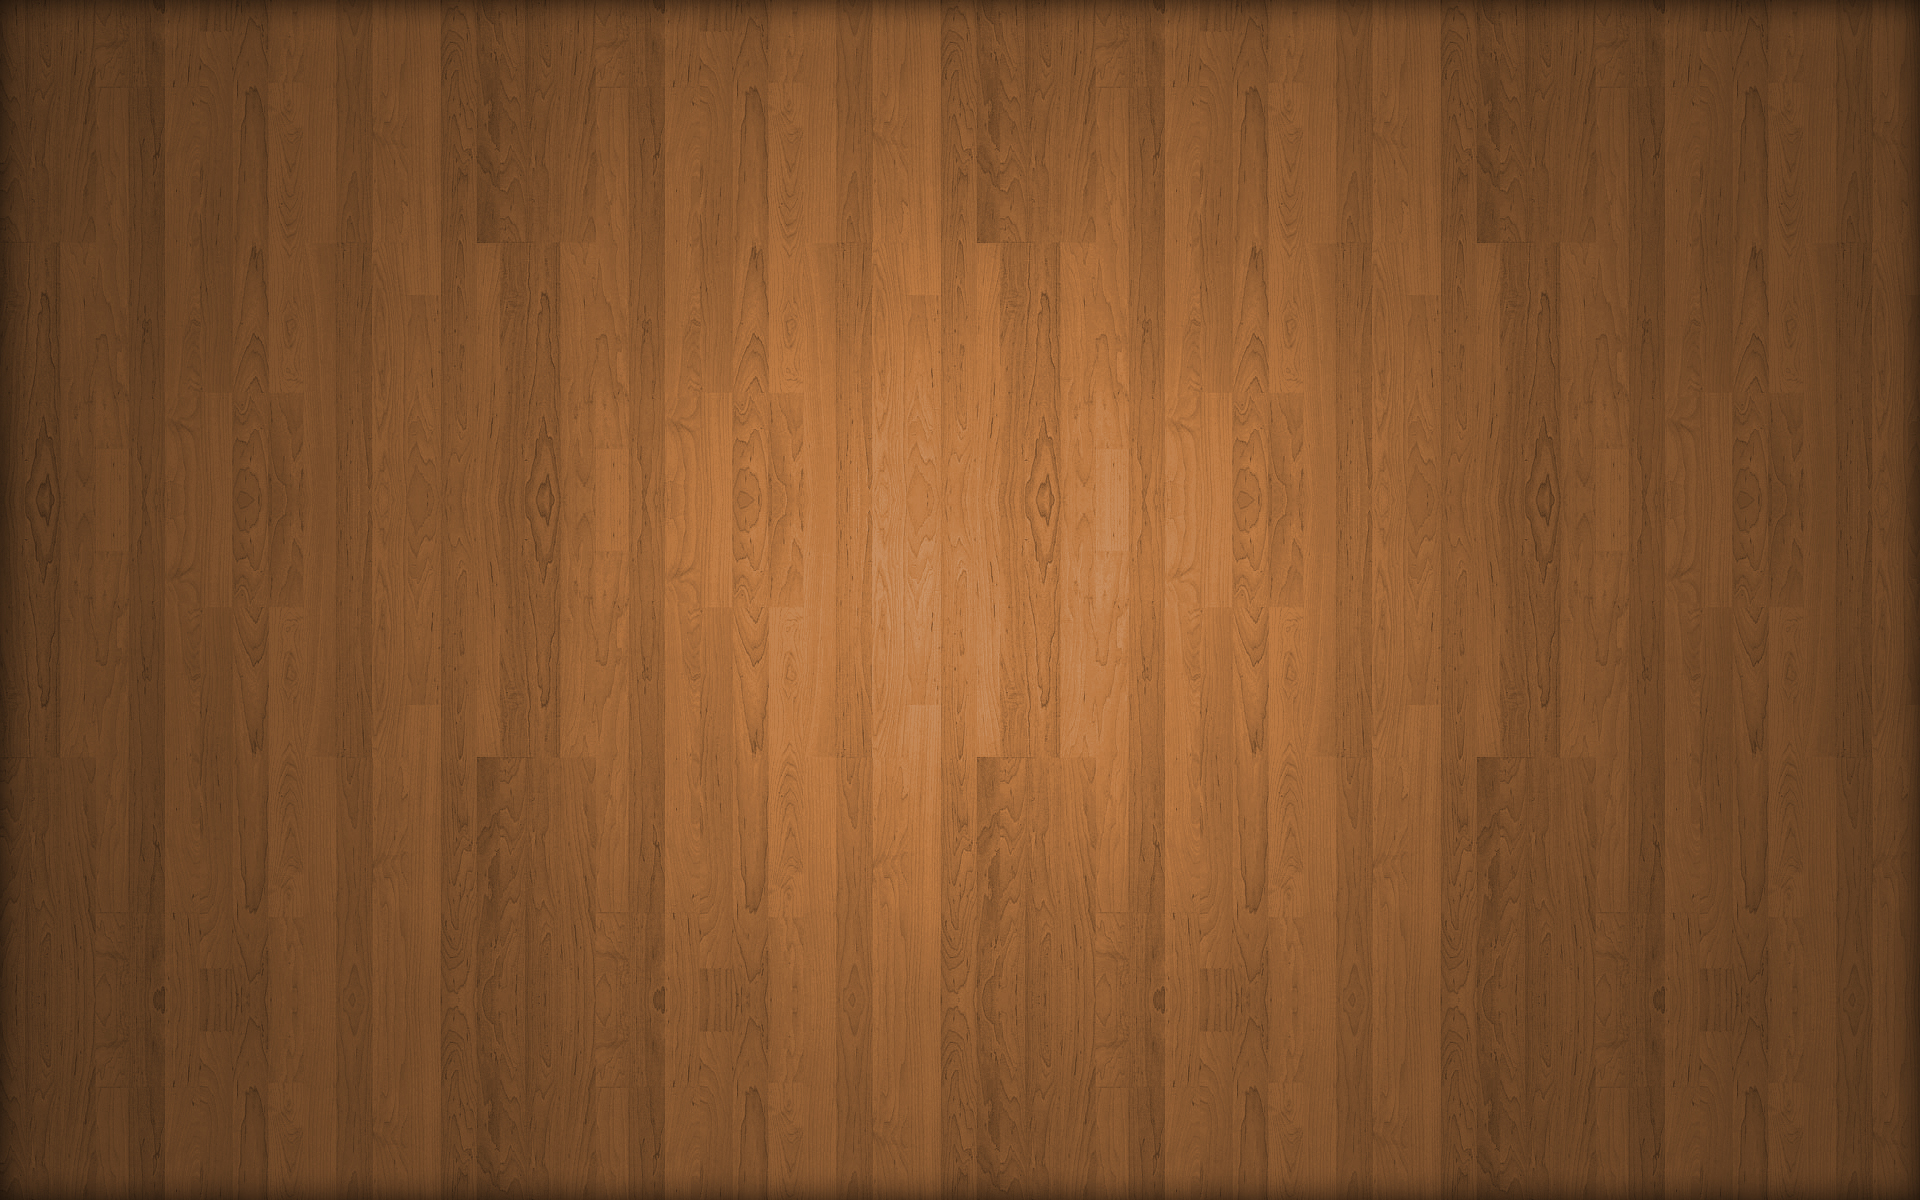 Holz wallpapers hintergr nde 1920x1200 id 79603 for Holz wallpaper